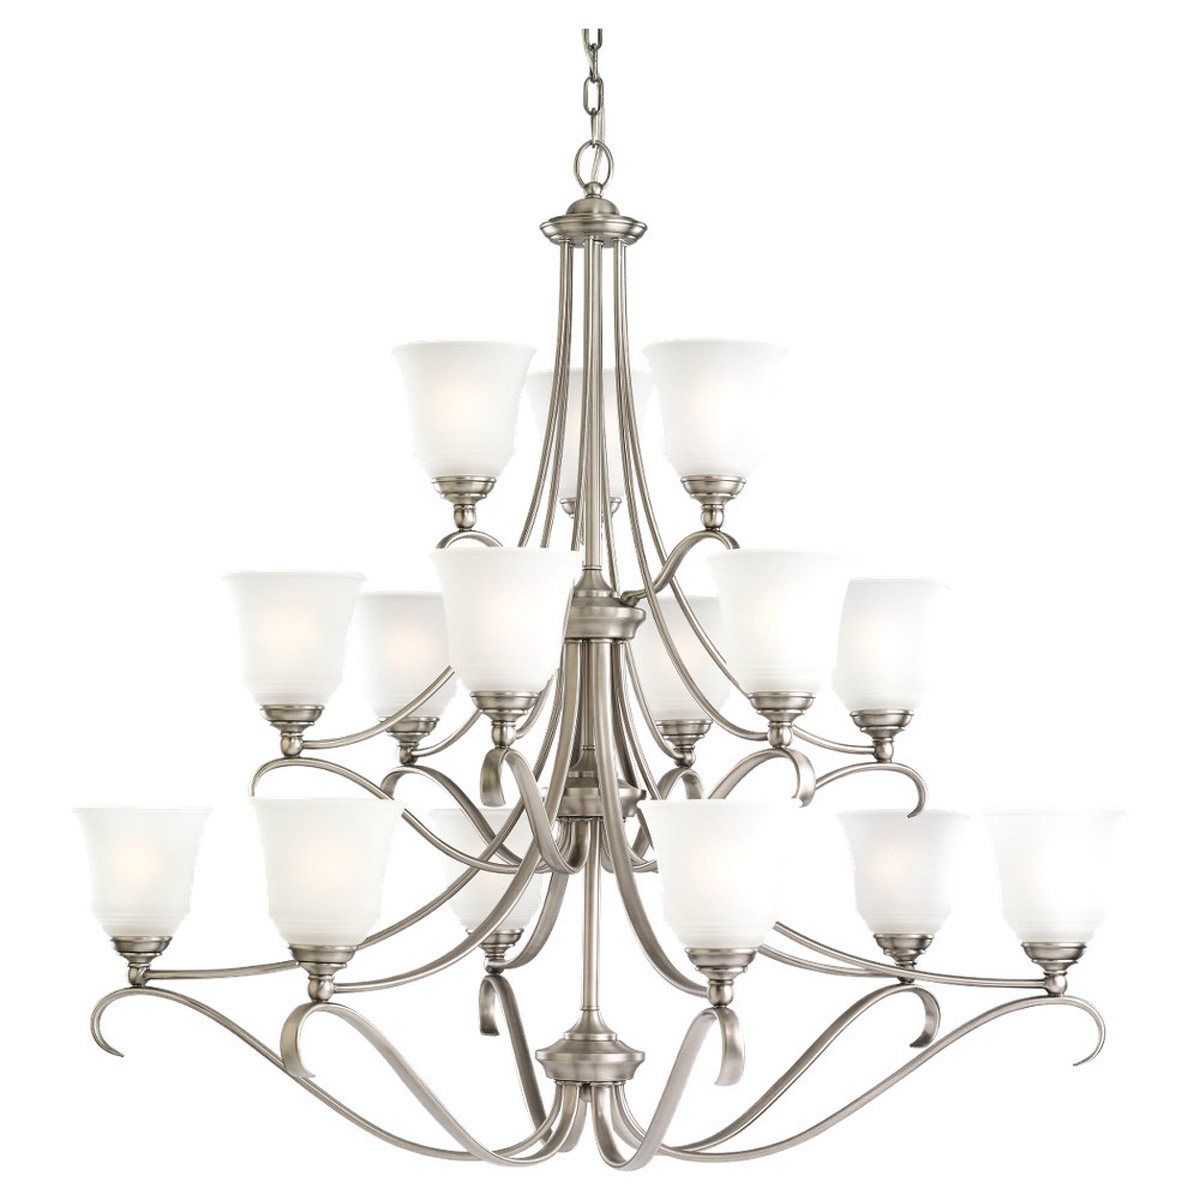 Sea Gull 39382BLE-965 Parkview 15 Light 43 inch Antique Brushed Nickel Chandelier Ceiling Light in Satin Etched Glass photo